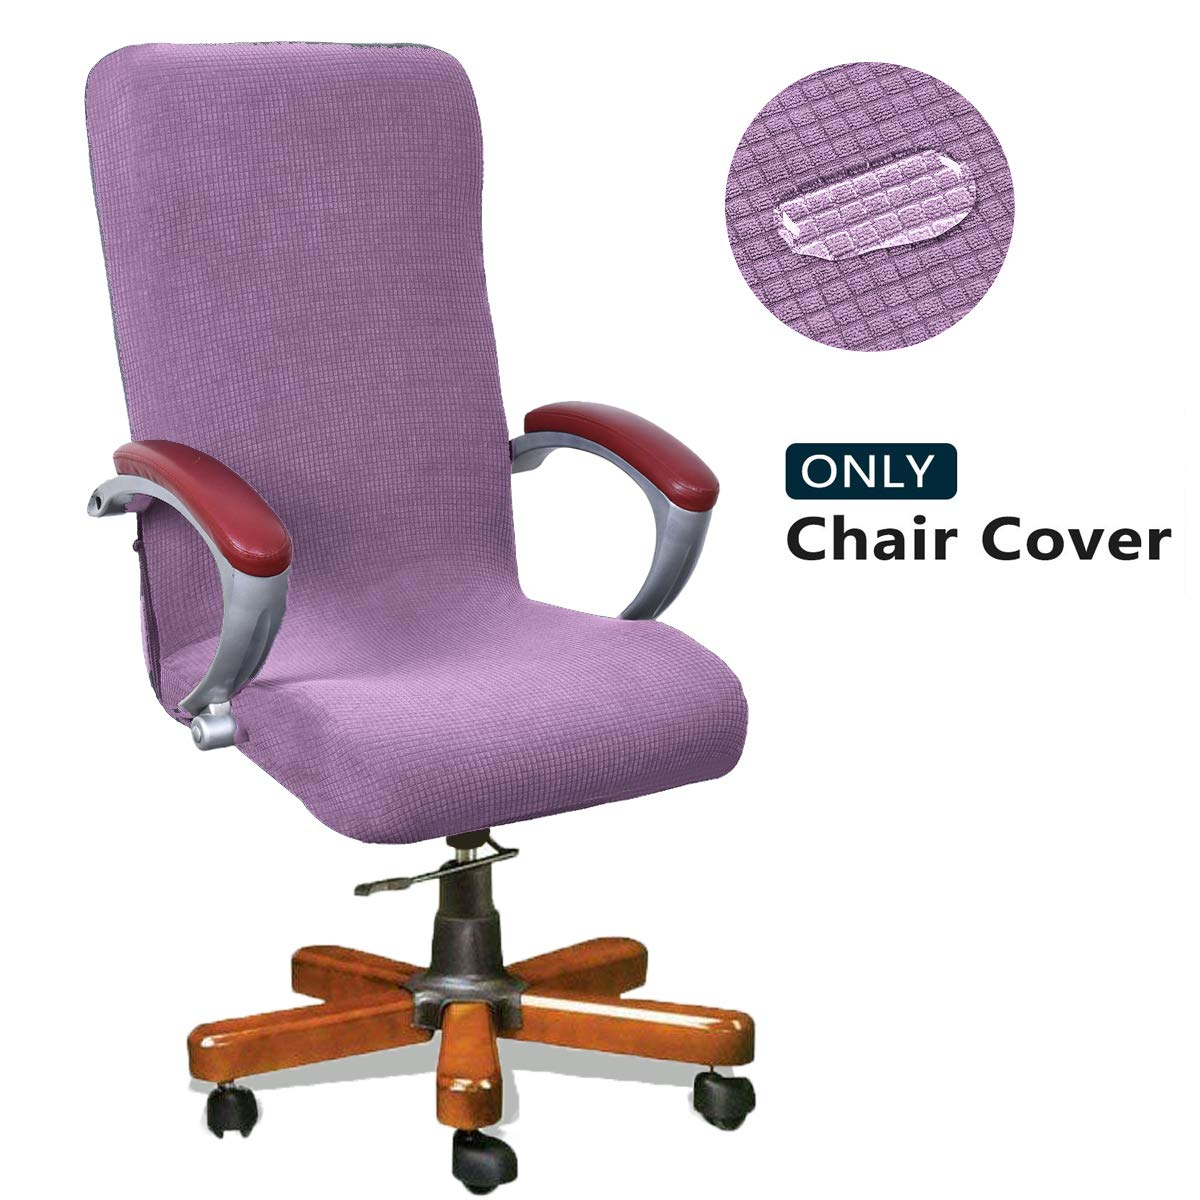 WOMACO Waterproof Office Chair Cover, Jacquard Computer Office Chair Covers Water-Repellent Universal Boss Chair Covers Modern Simplism Style High Back Chair Slipcover (Light Purple, Large)